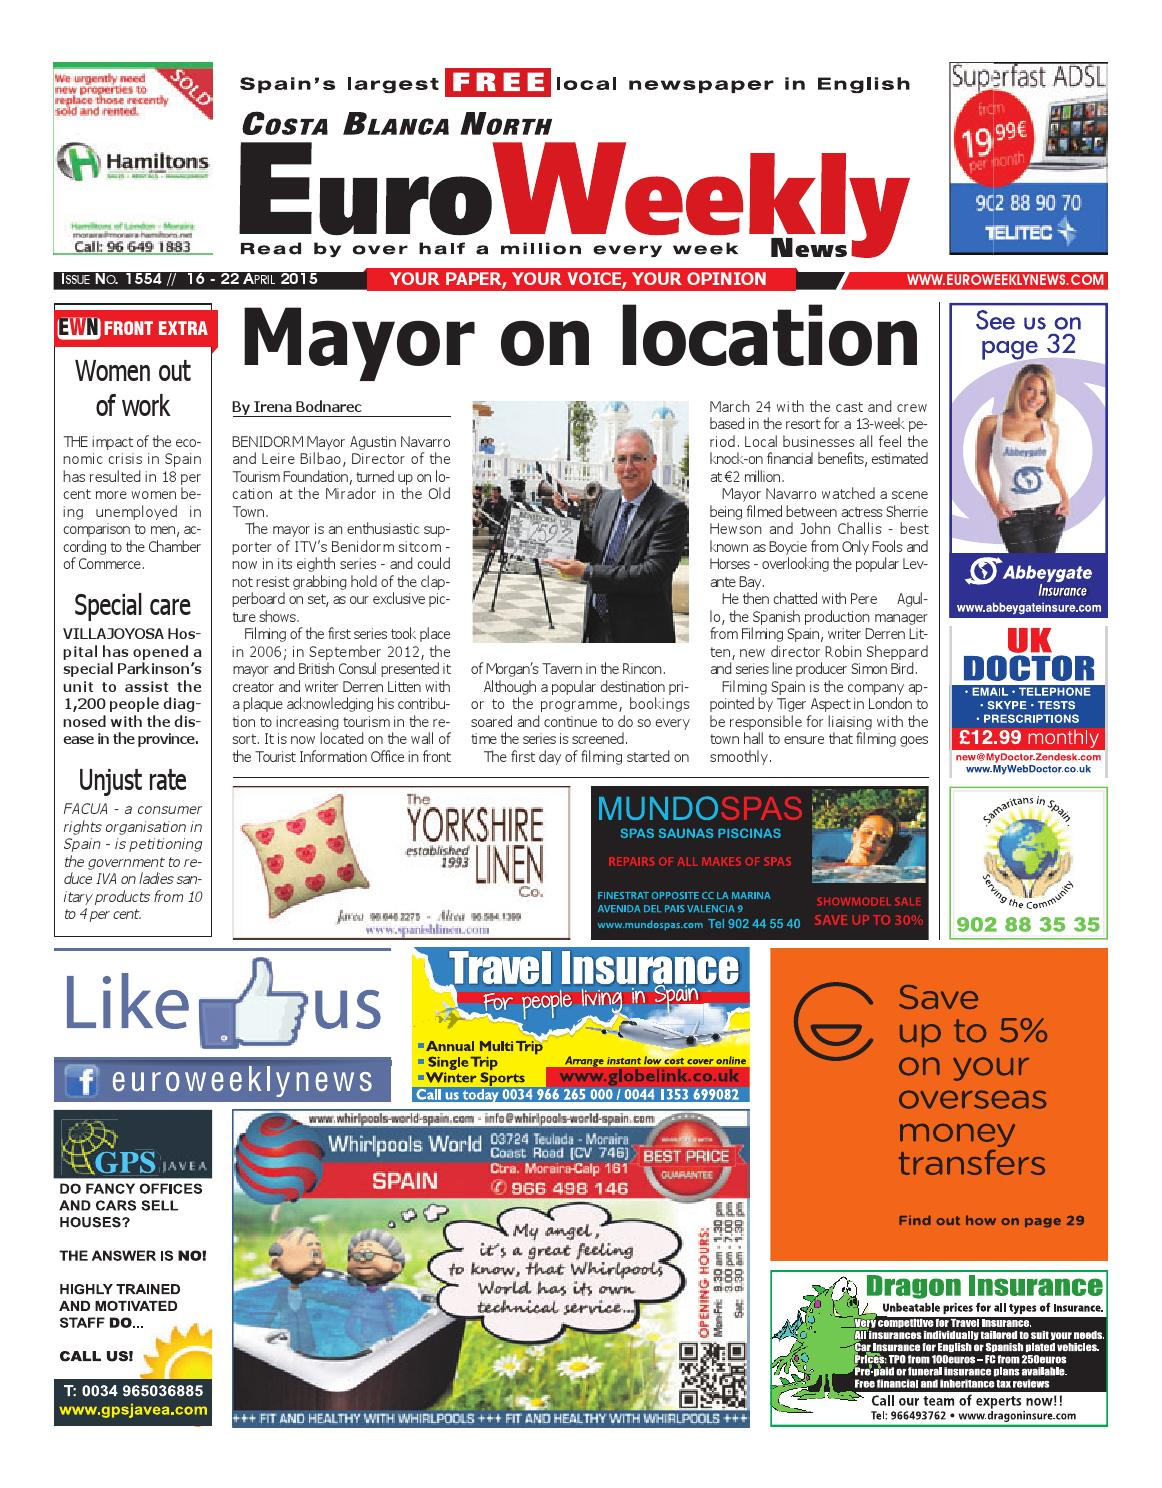 Euro Weekly News Costa Blanca North 16 22 April 2015 Issue  # Muebles Oliva Cartagena